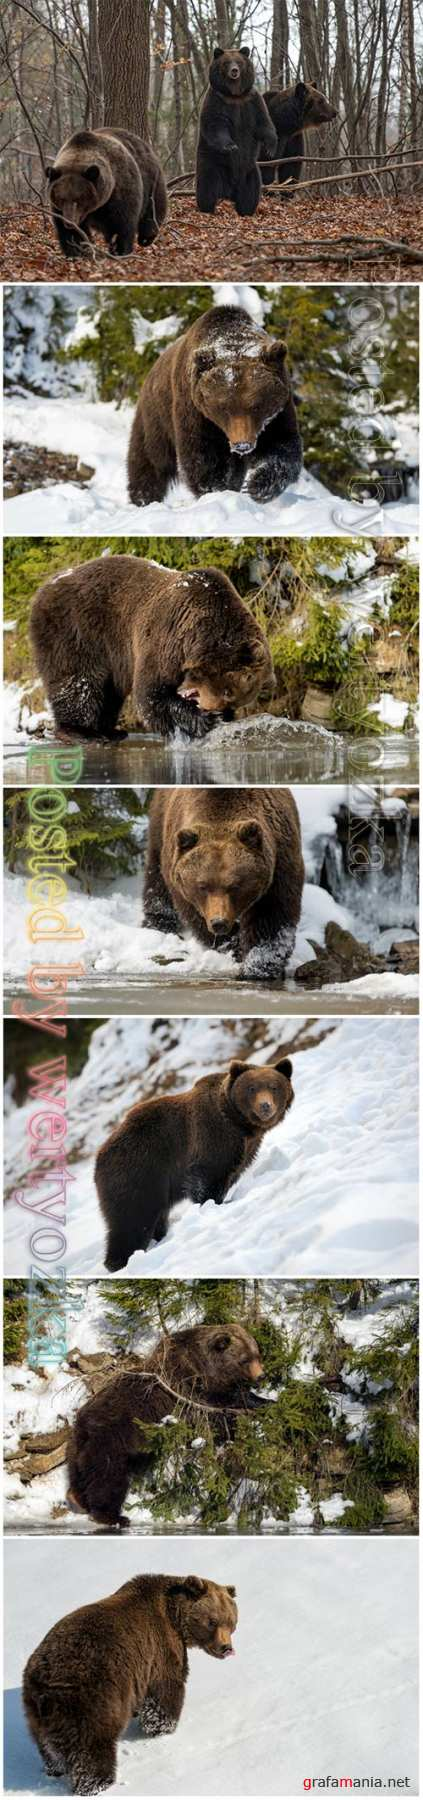 Wild brown bear beautiful stock photo